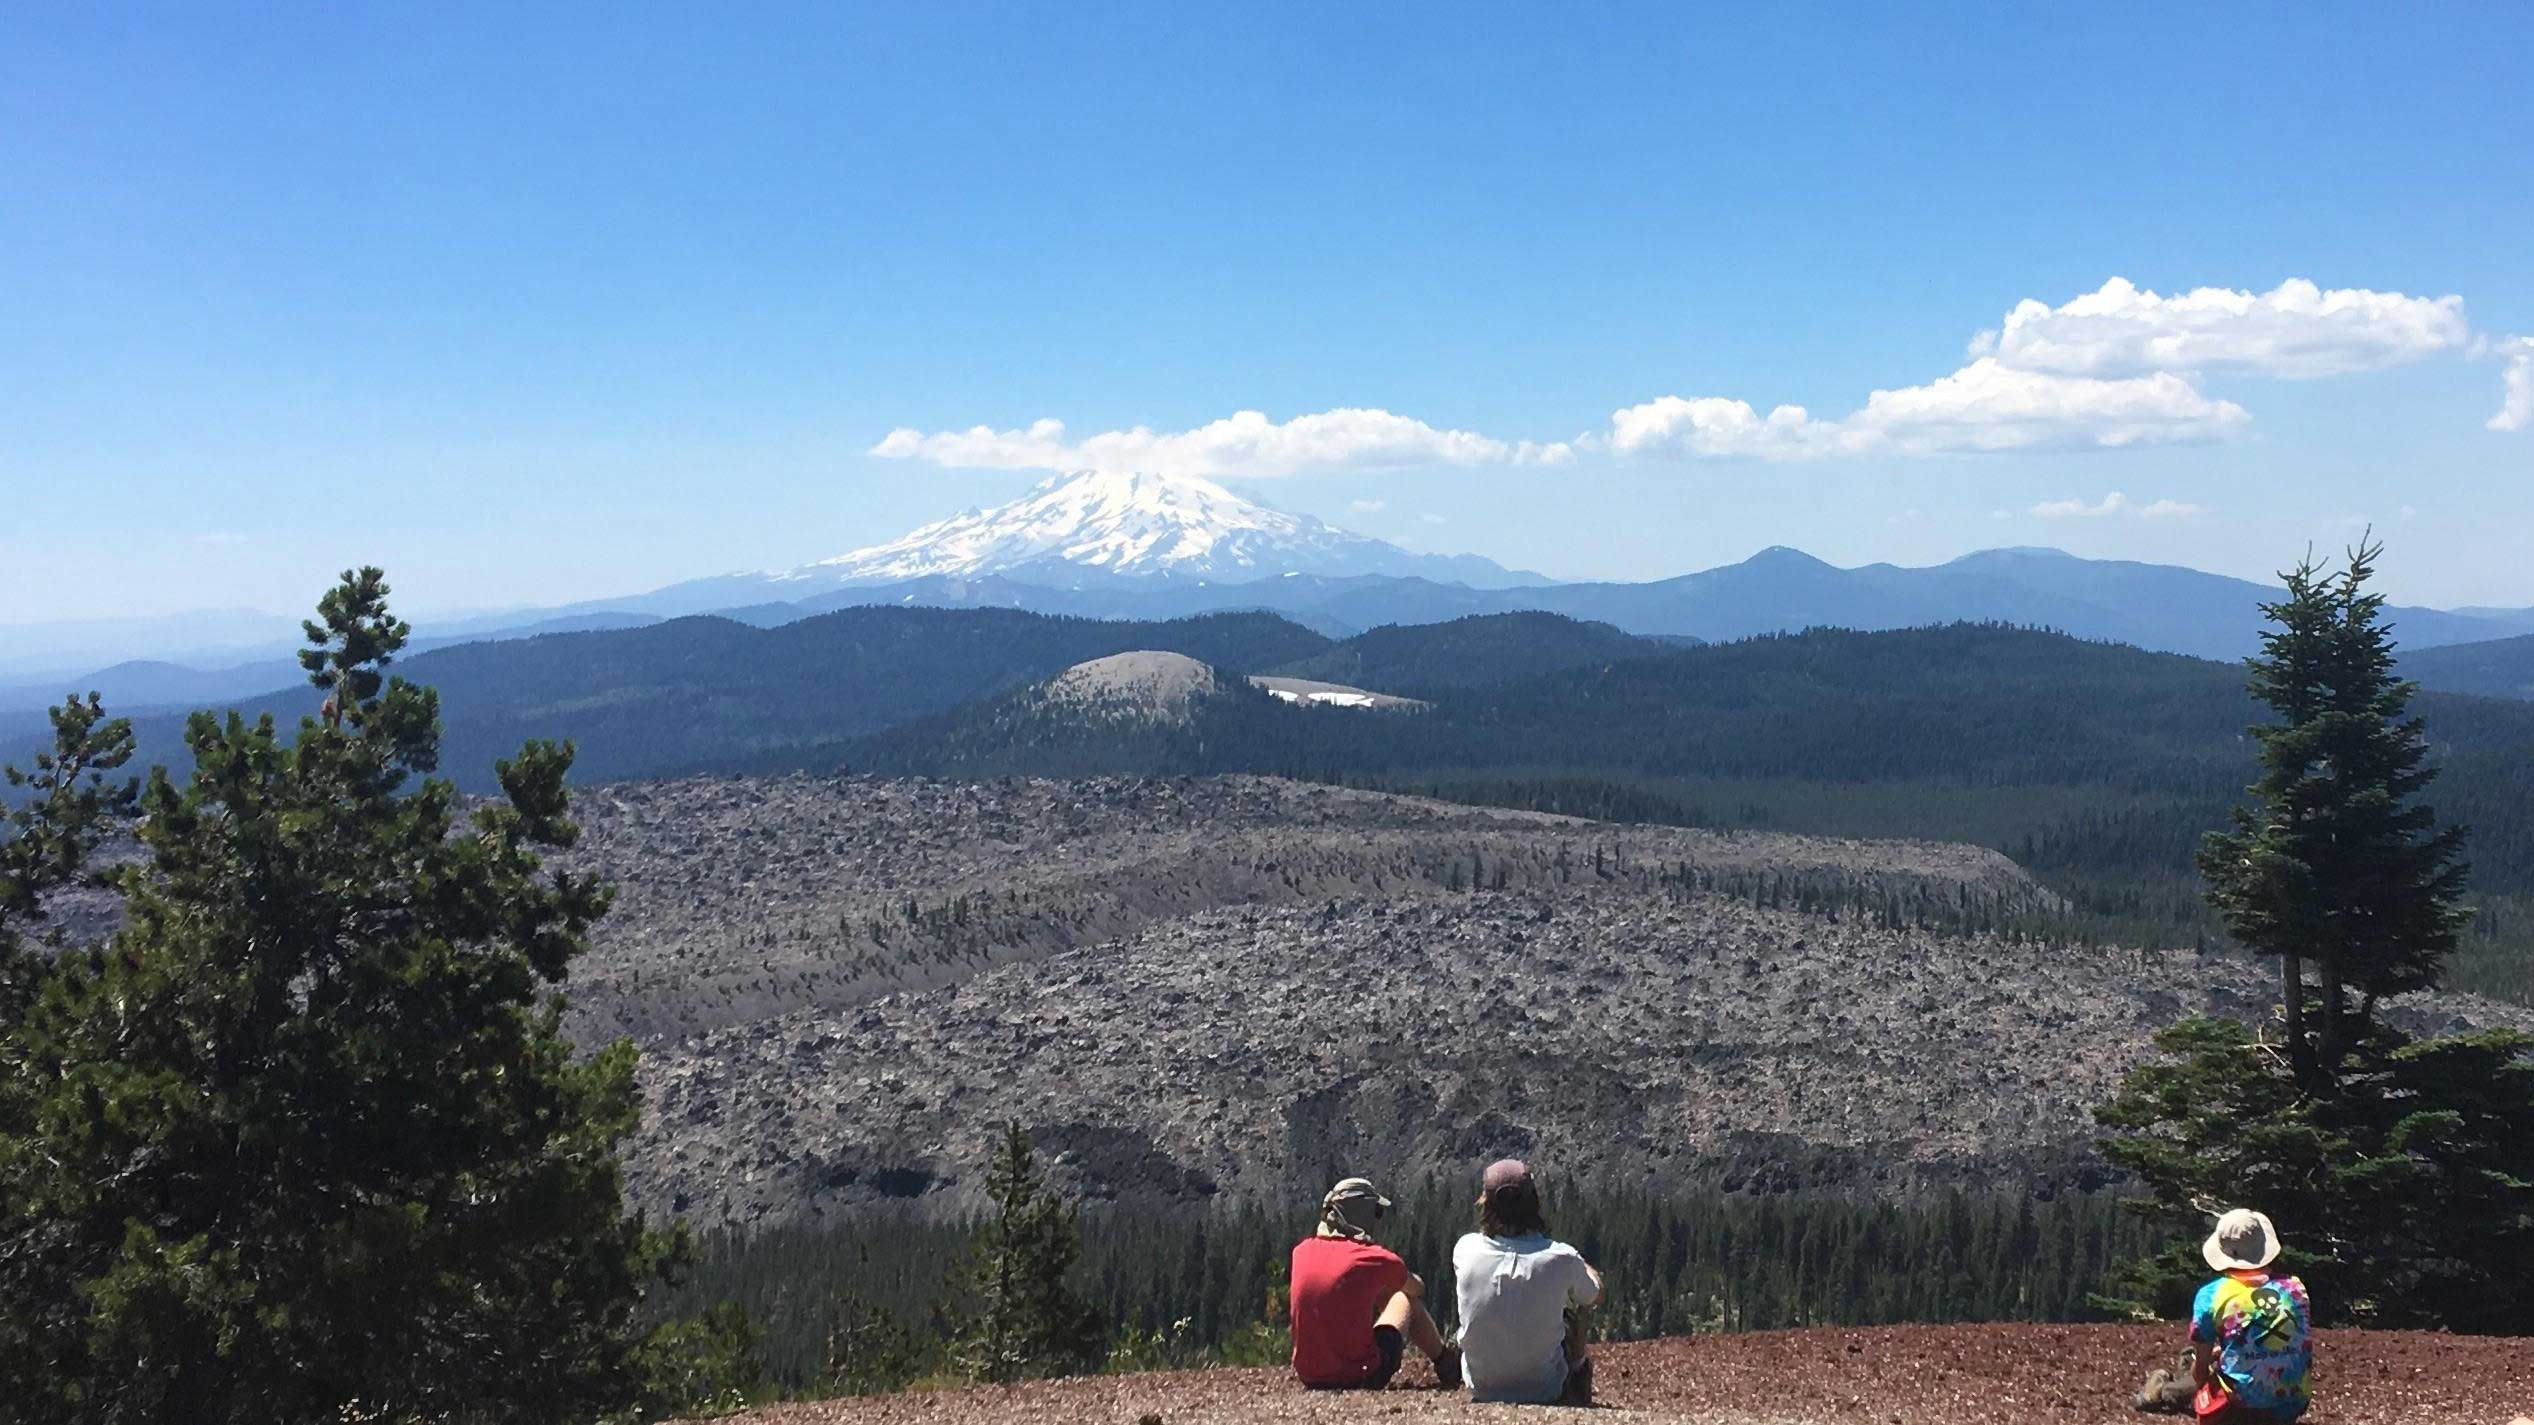 People look at a dormant volcano in the distance